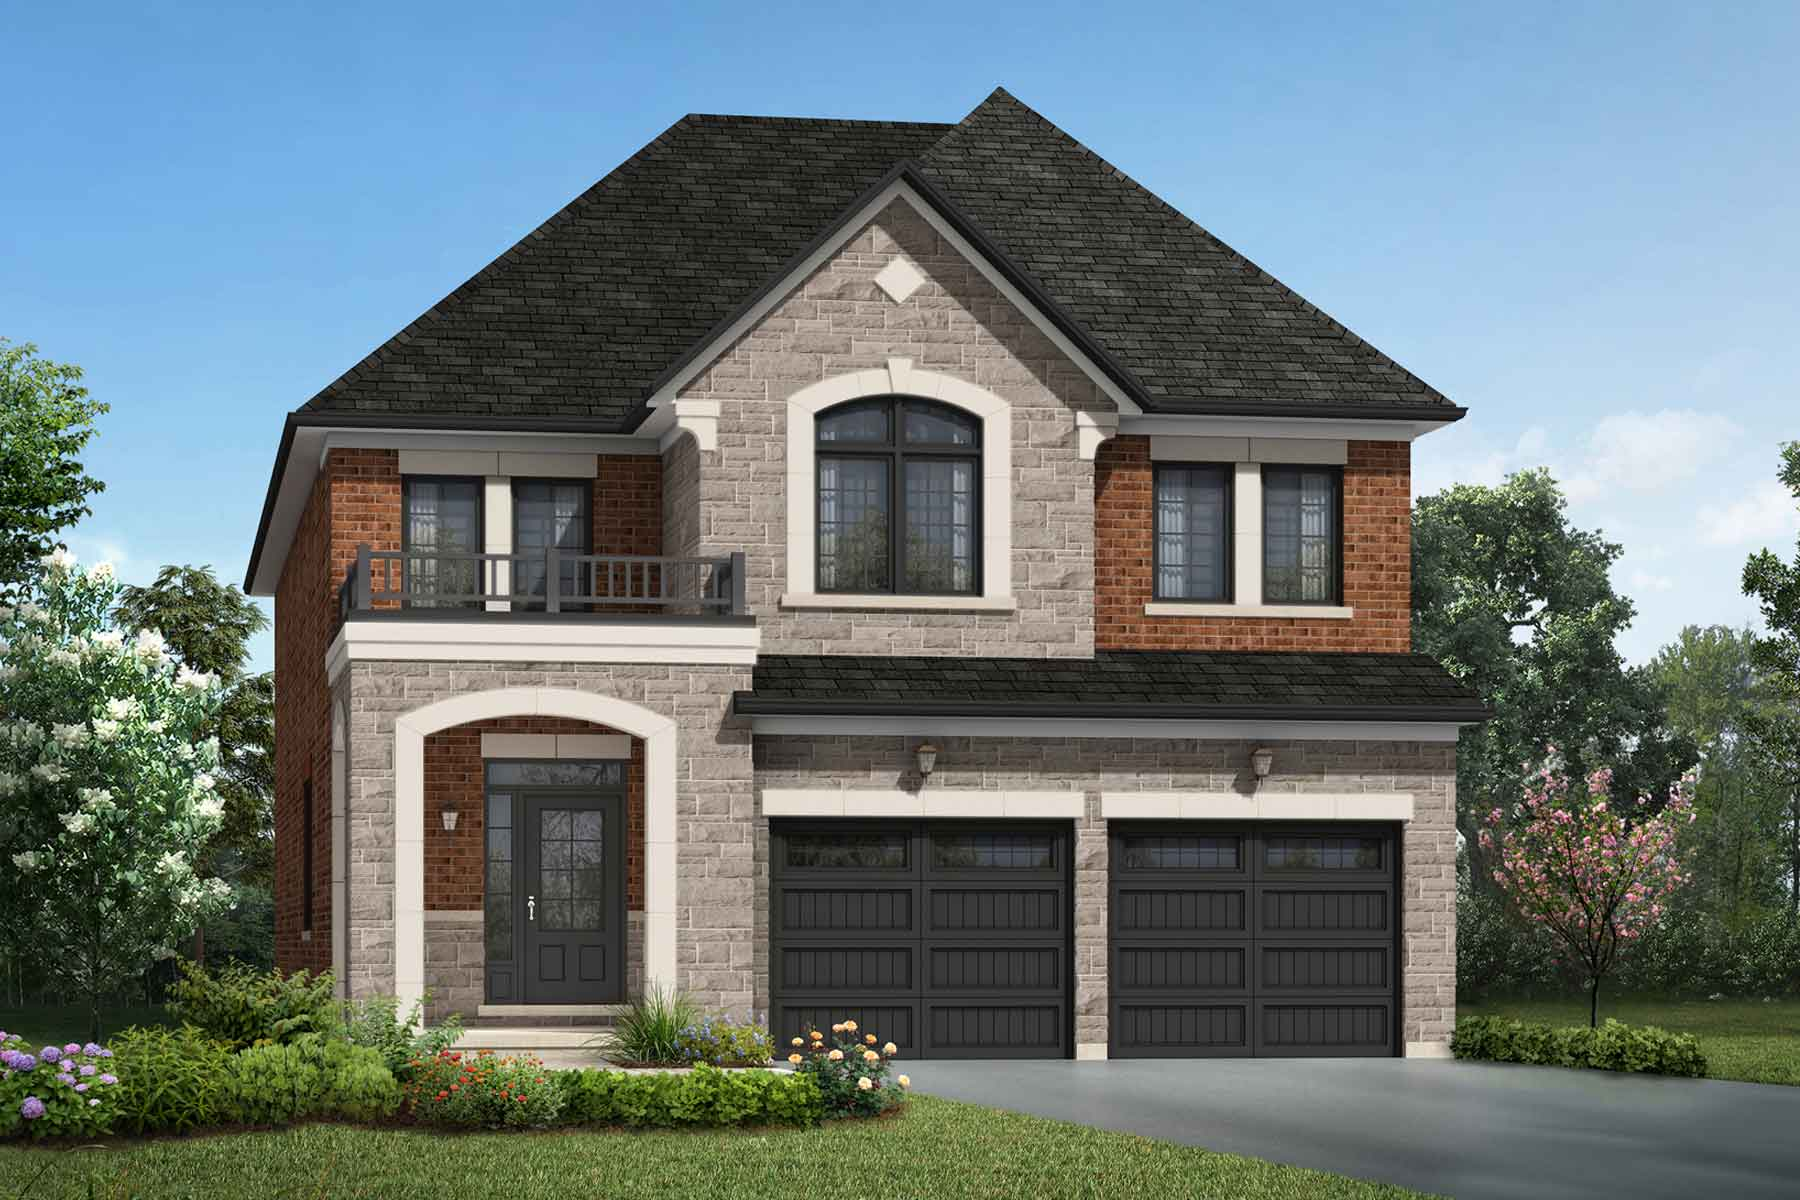 Valley View Plan englishmanor_seatonwhitevale_brockridge_main at Seaton Whitevale in Pickering Ontario by Mattamy Homes